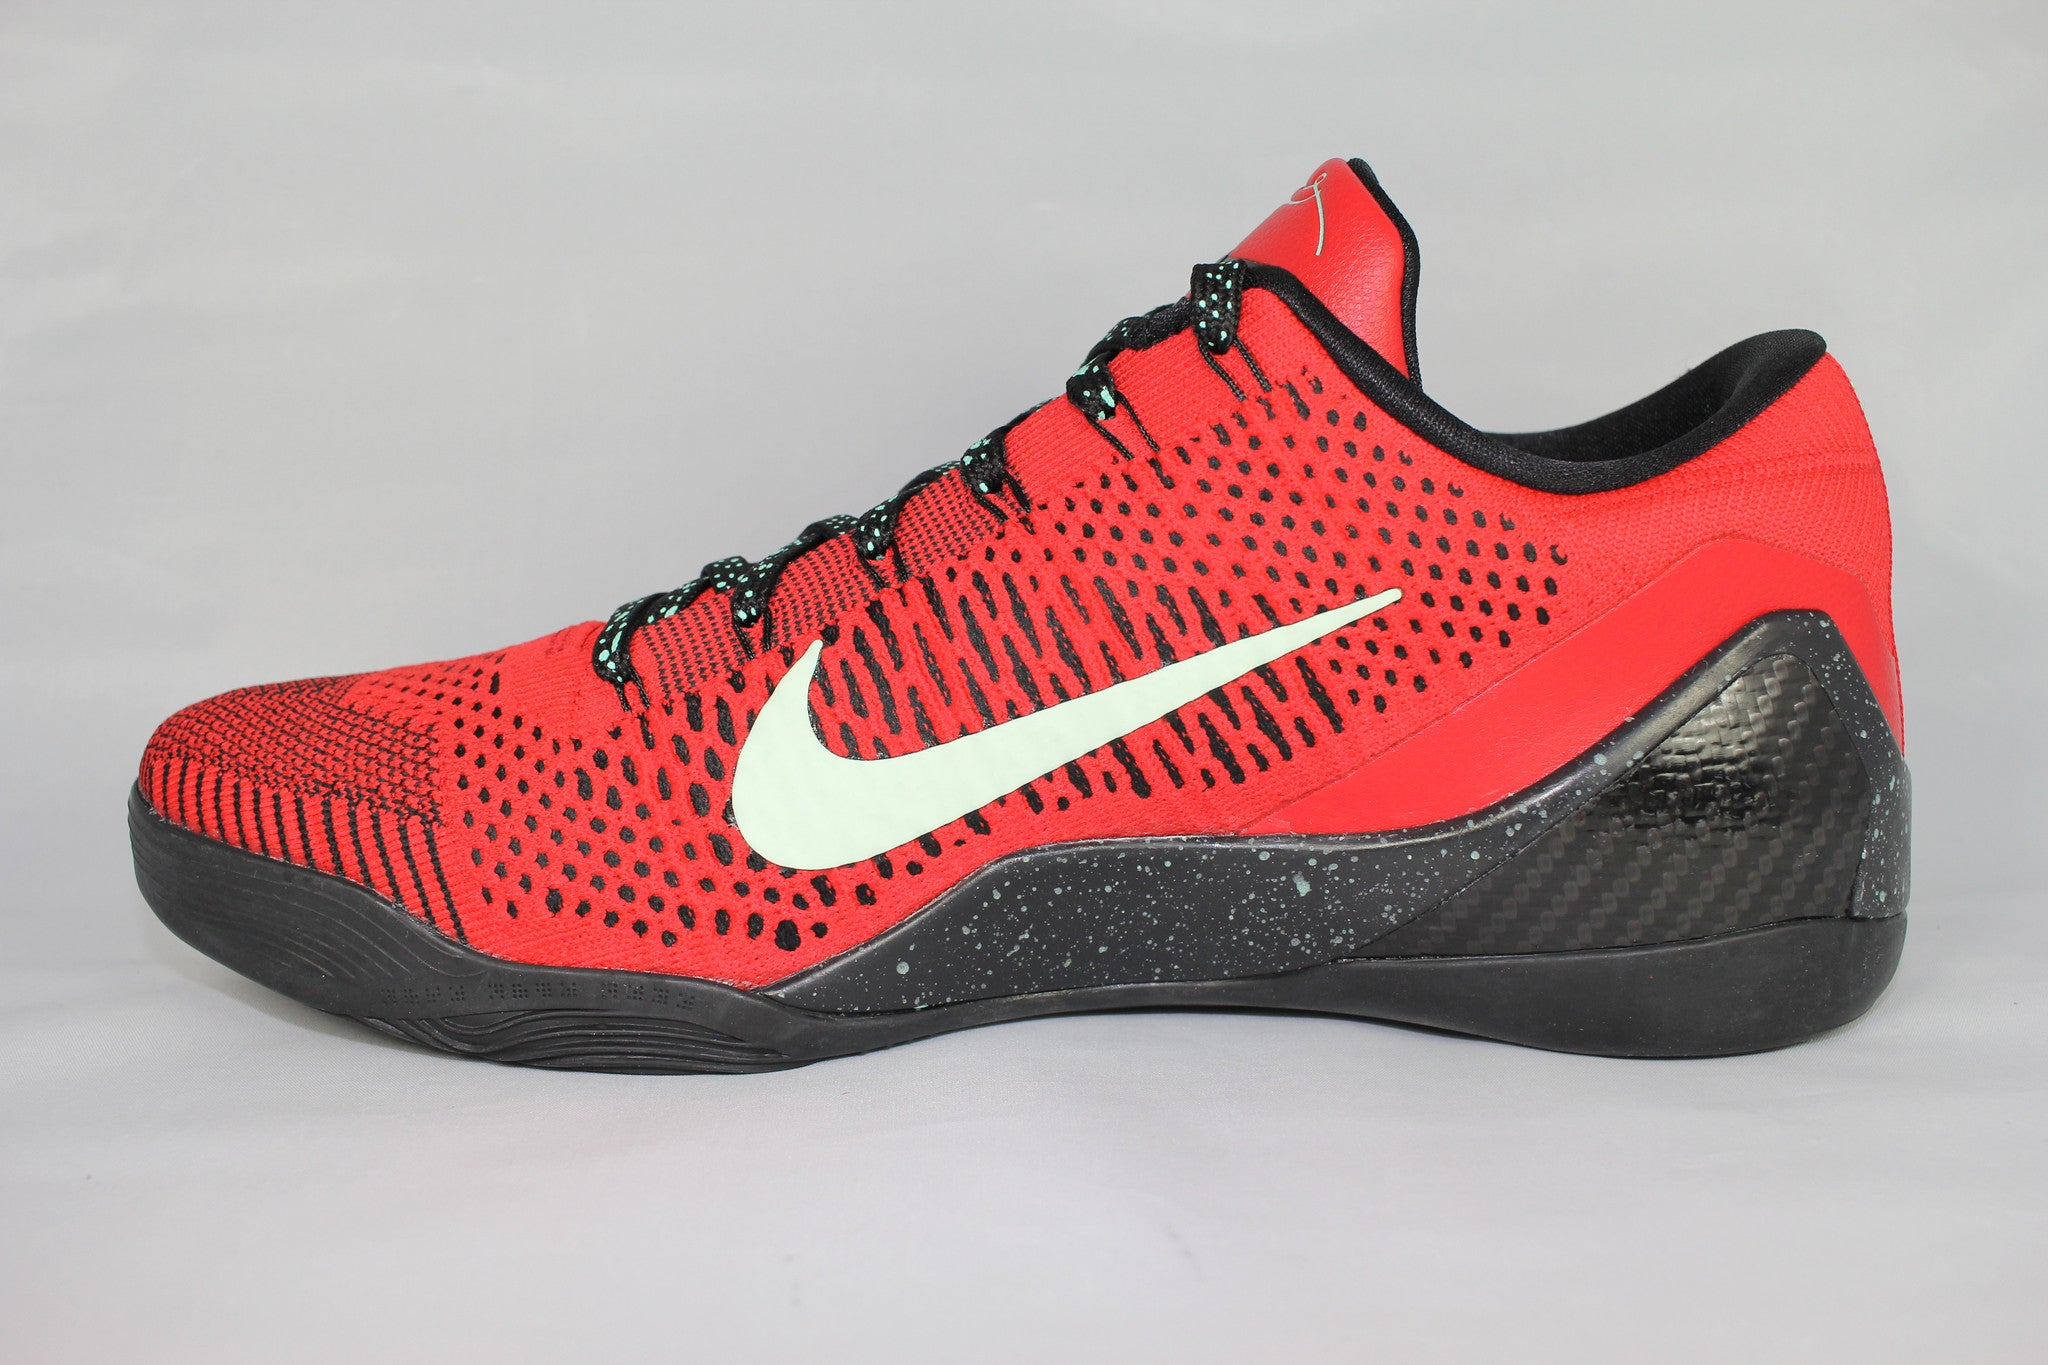 6ad725a6a5d ... Nike Kobe 9 Elite Low (Red)